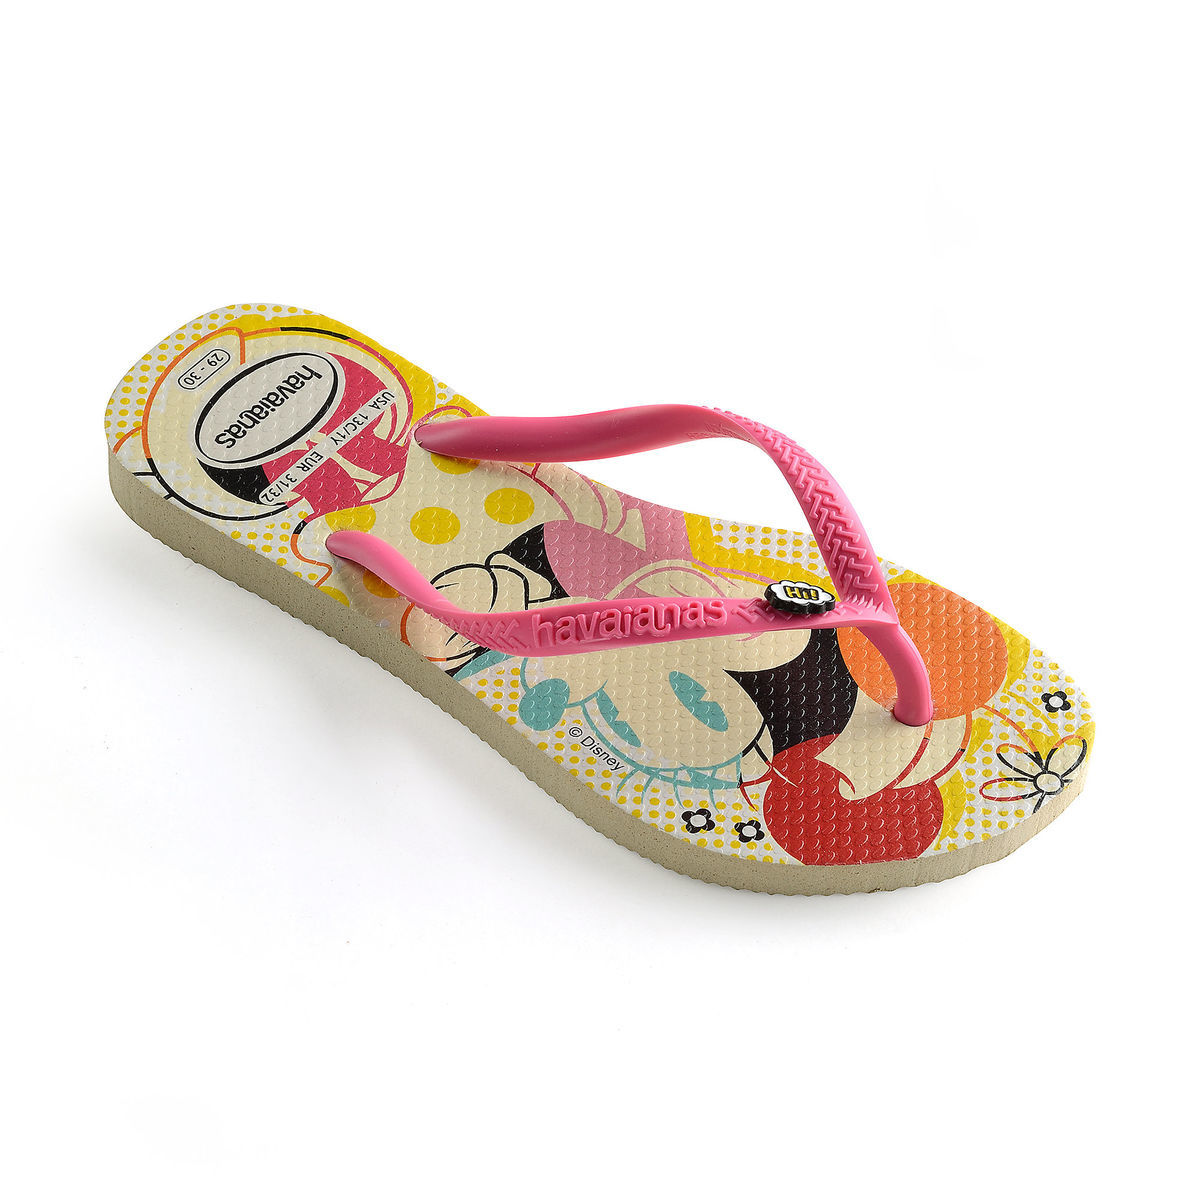 4c4b99b43ce74c Product Image of Minnie Mouse Flip Flops for Kids by Havaianas   1